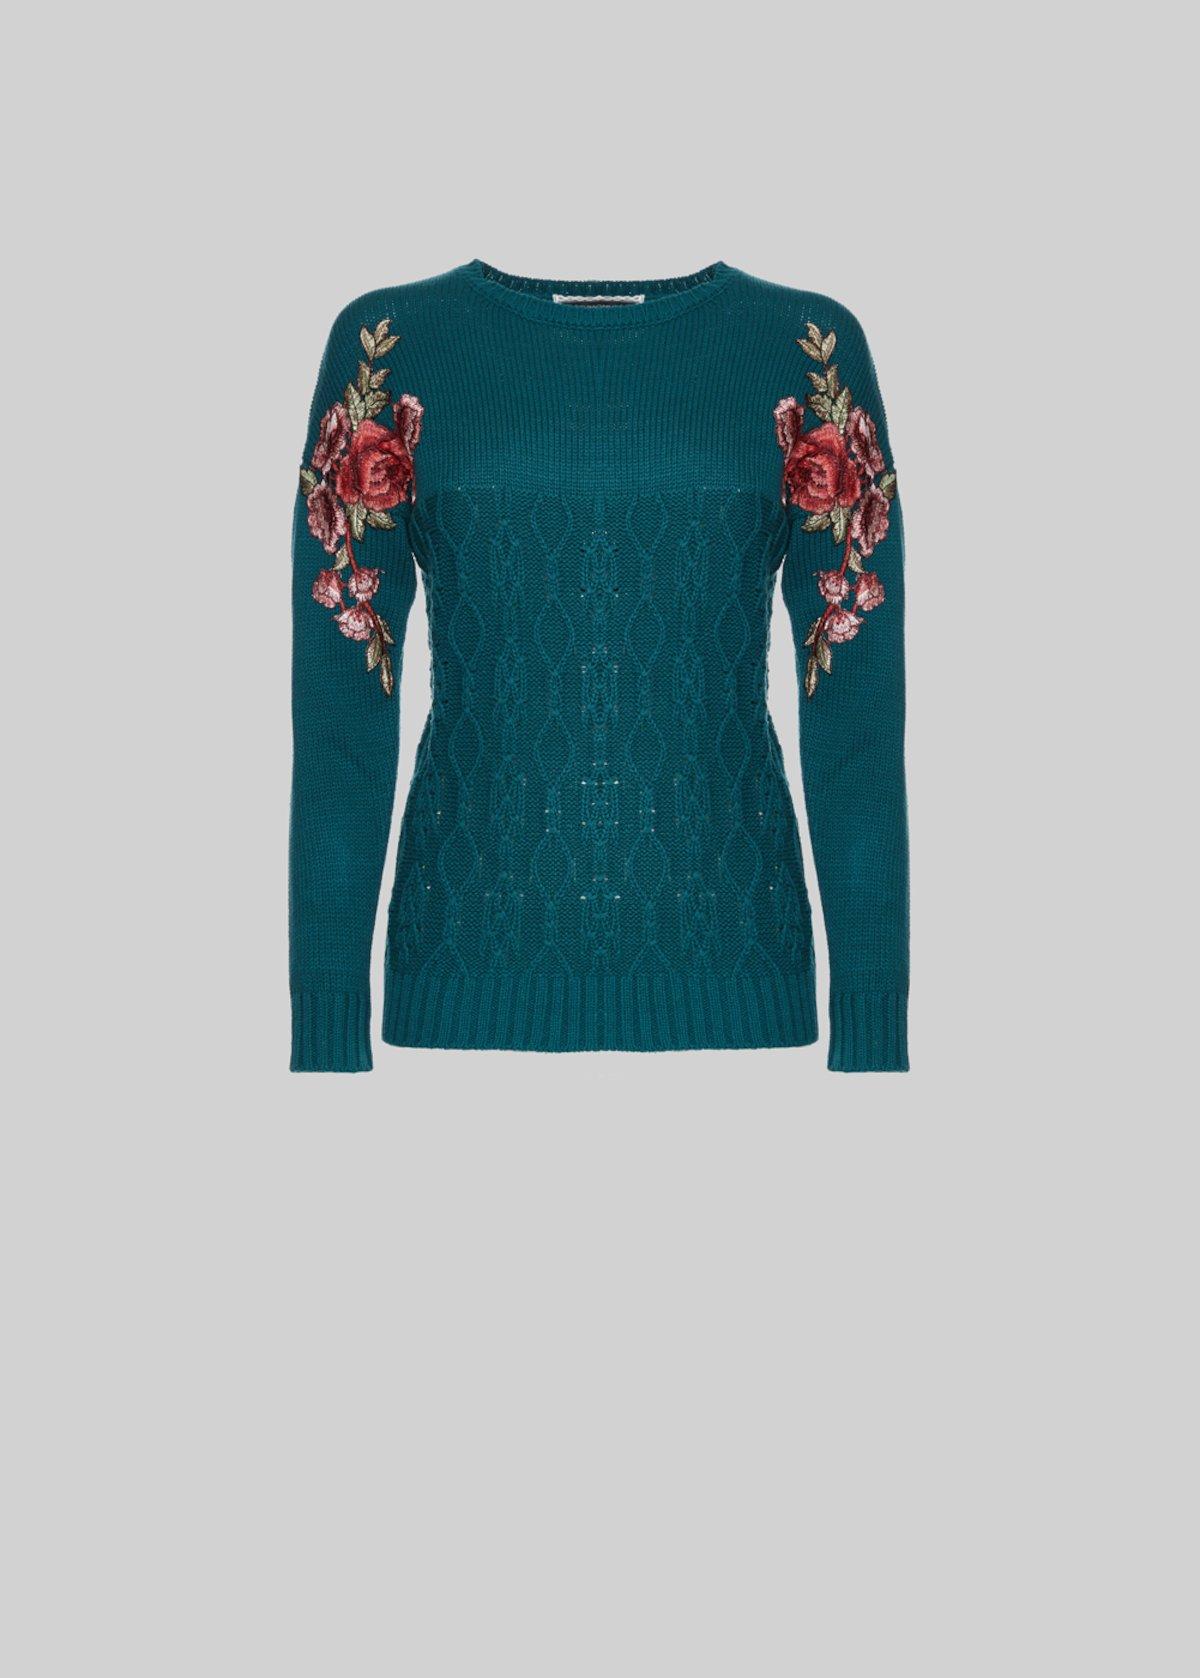 Marbella sweater with flower patch detail - Duck - Woman - Category image